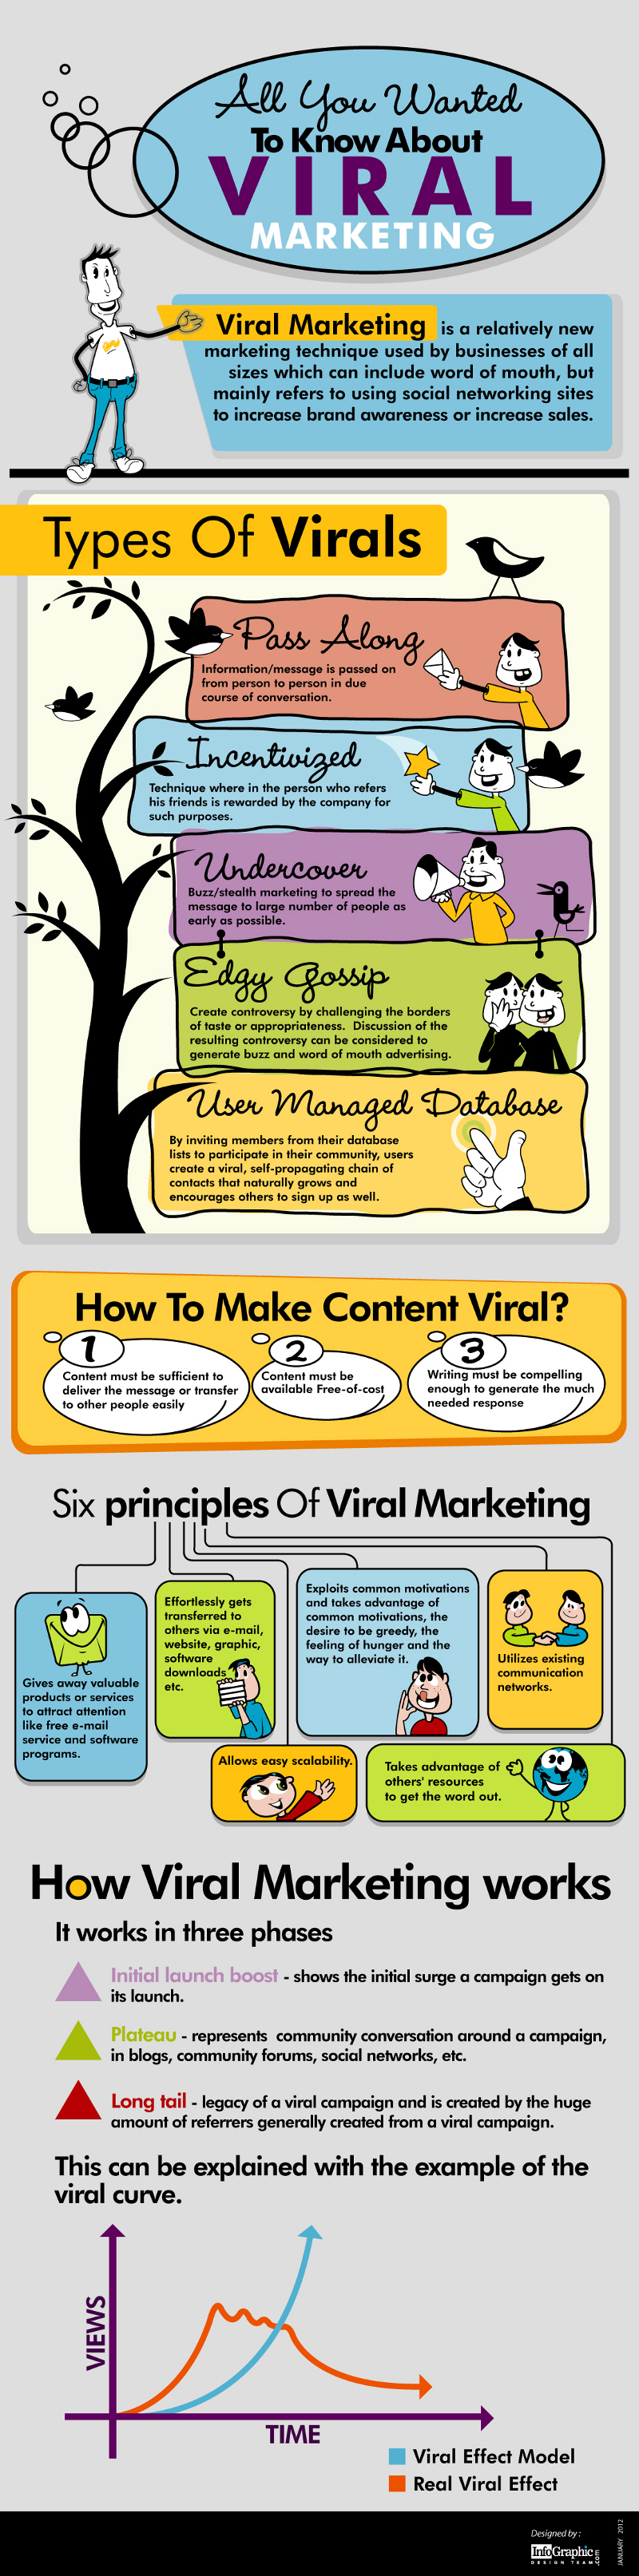 Facts About Viral Marketing